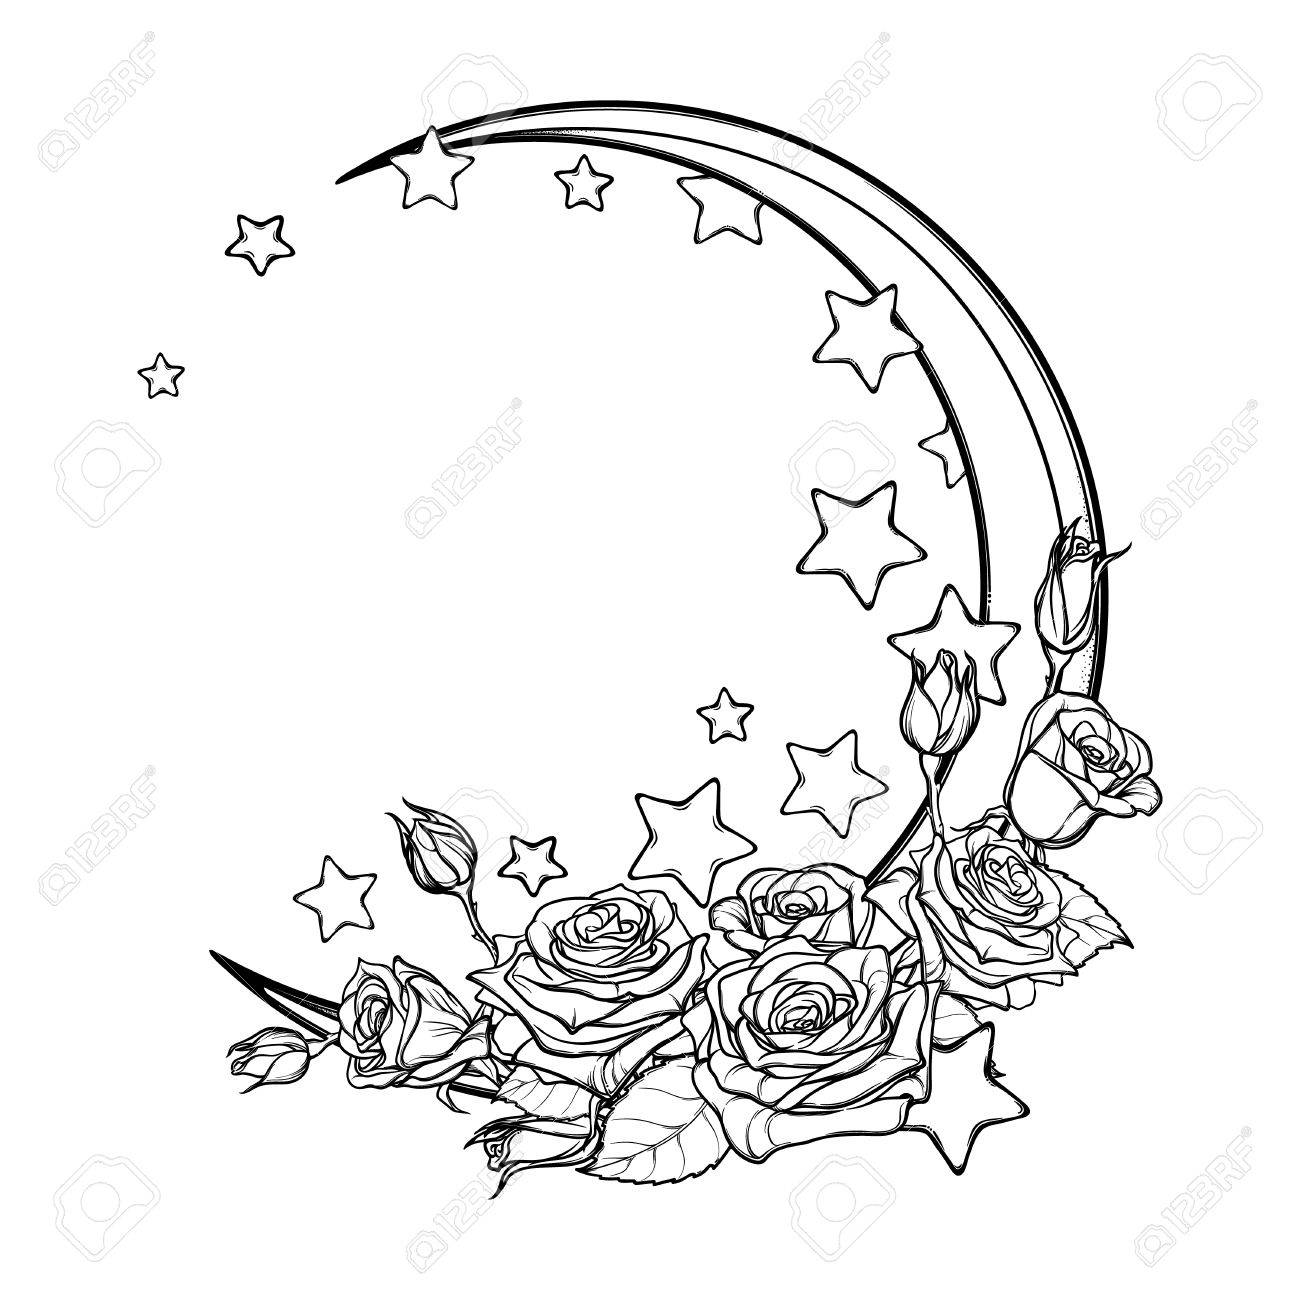 1300x1300 Kawaii Night Sky Composition With Roses Bouquet, Stars And Moon